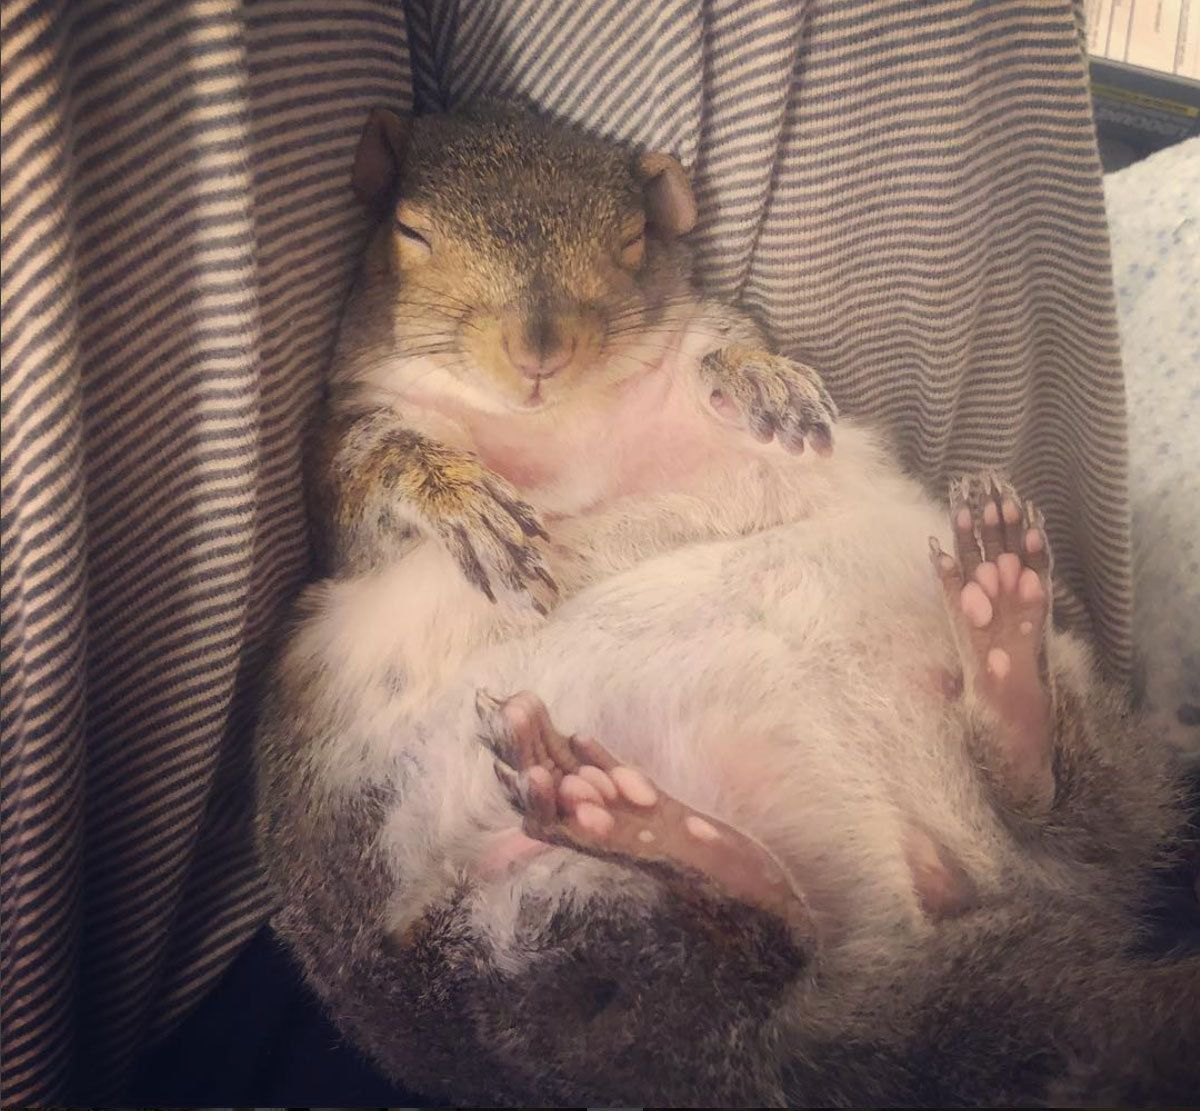 How A Pair Of Wildlife Rescuers Ended Up With A Chubby Pet Squirrel Named Thumbelina Popular Science